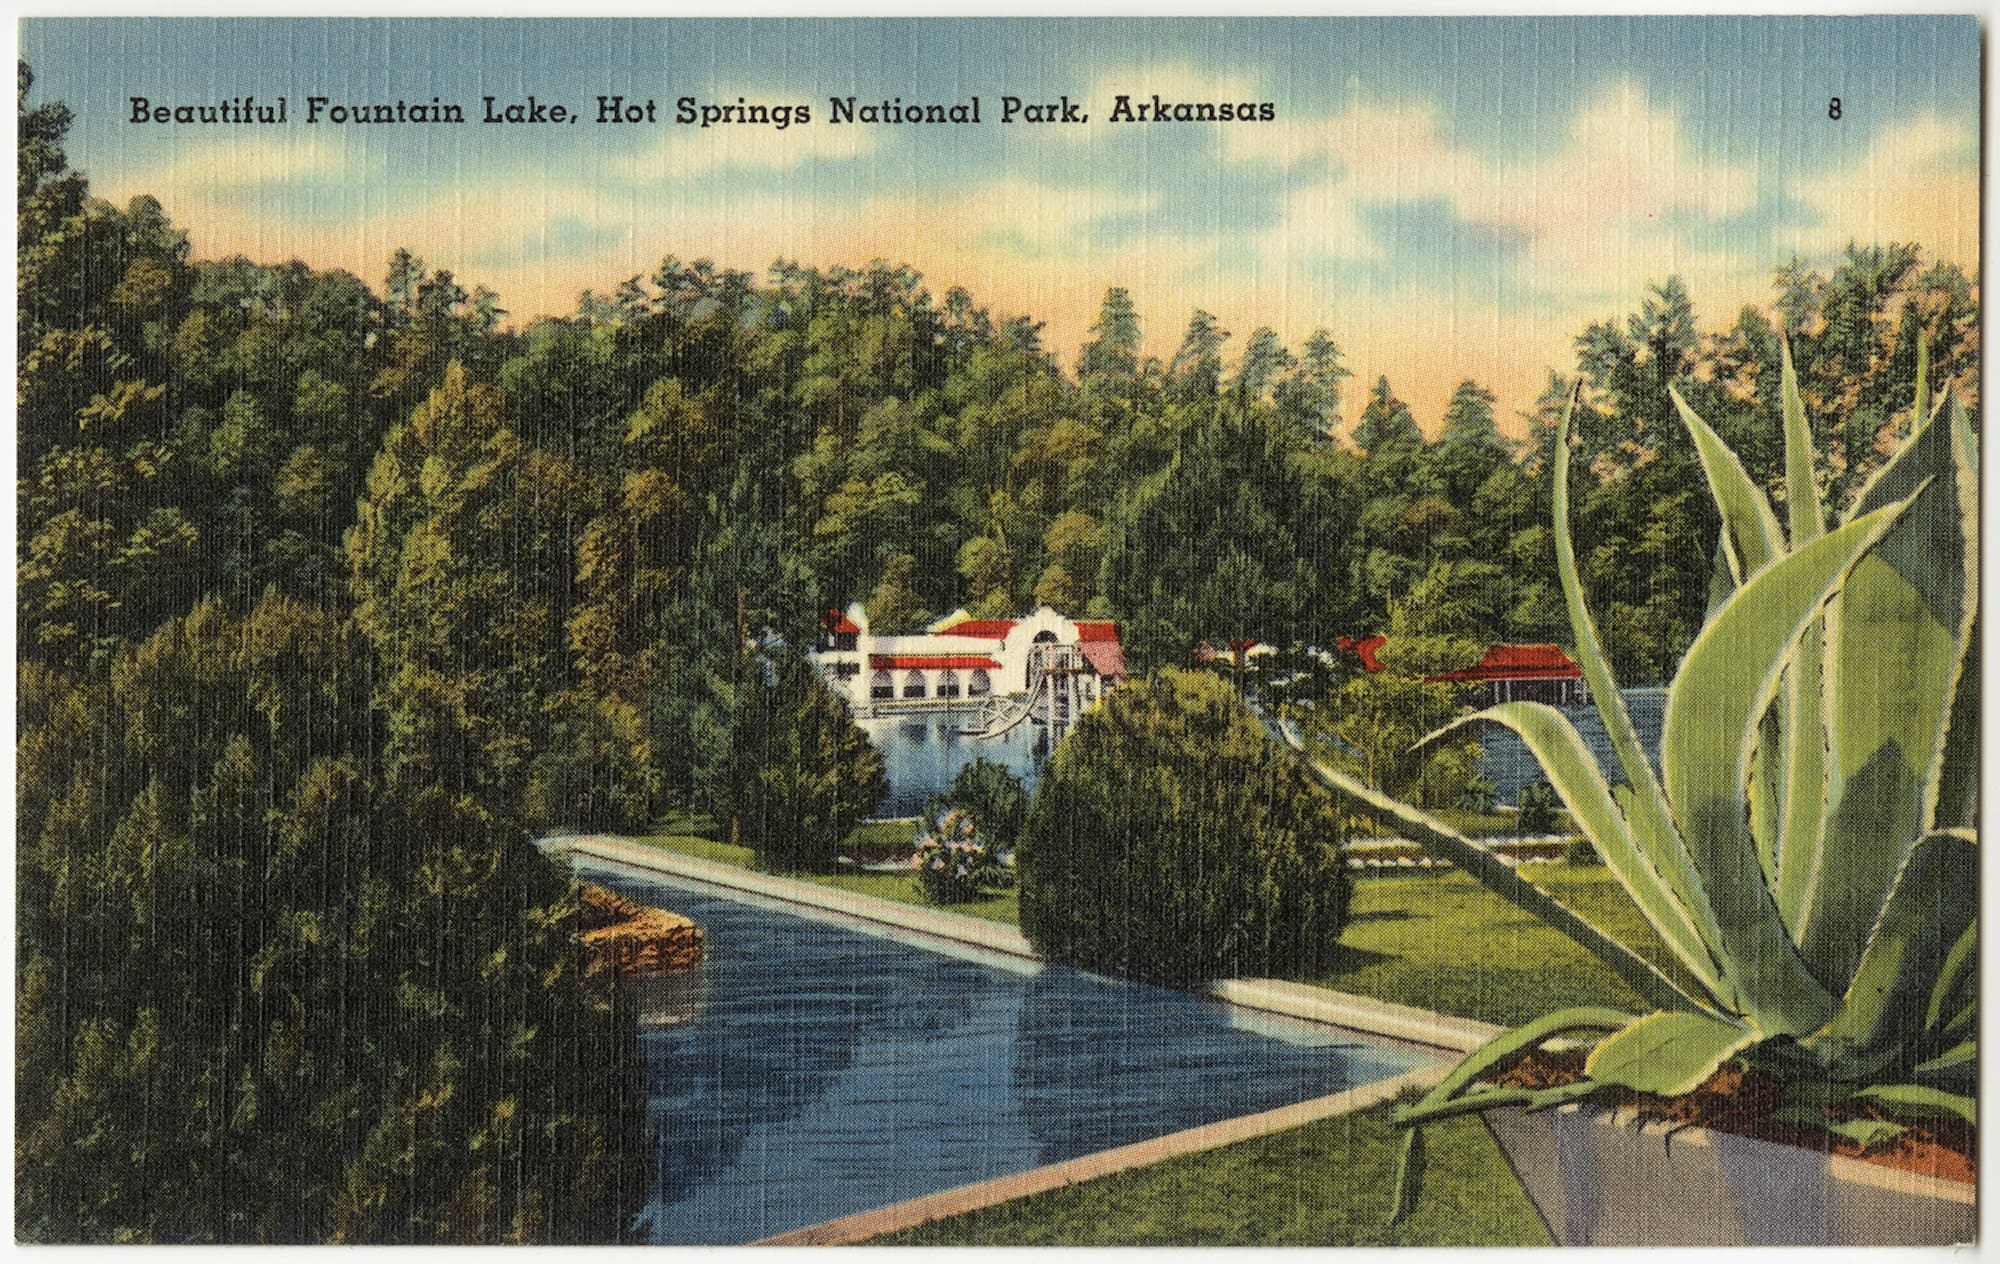 Explore Arkansas's Hot Springs National Park with our travel guide that has all the details on trails, bathhouses, camping, lodging, and where to find the best views.